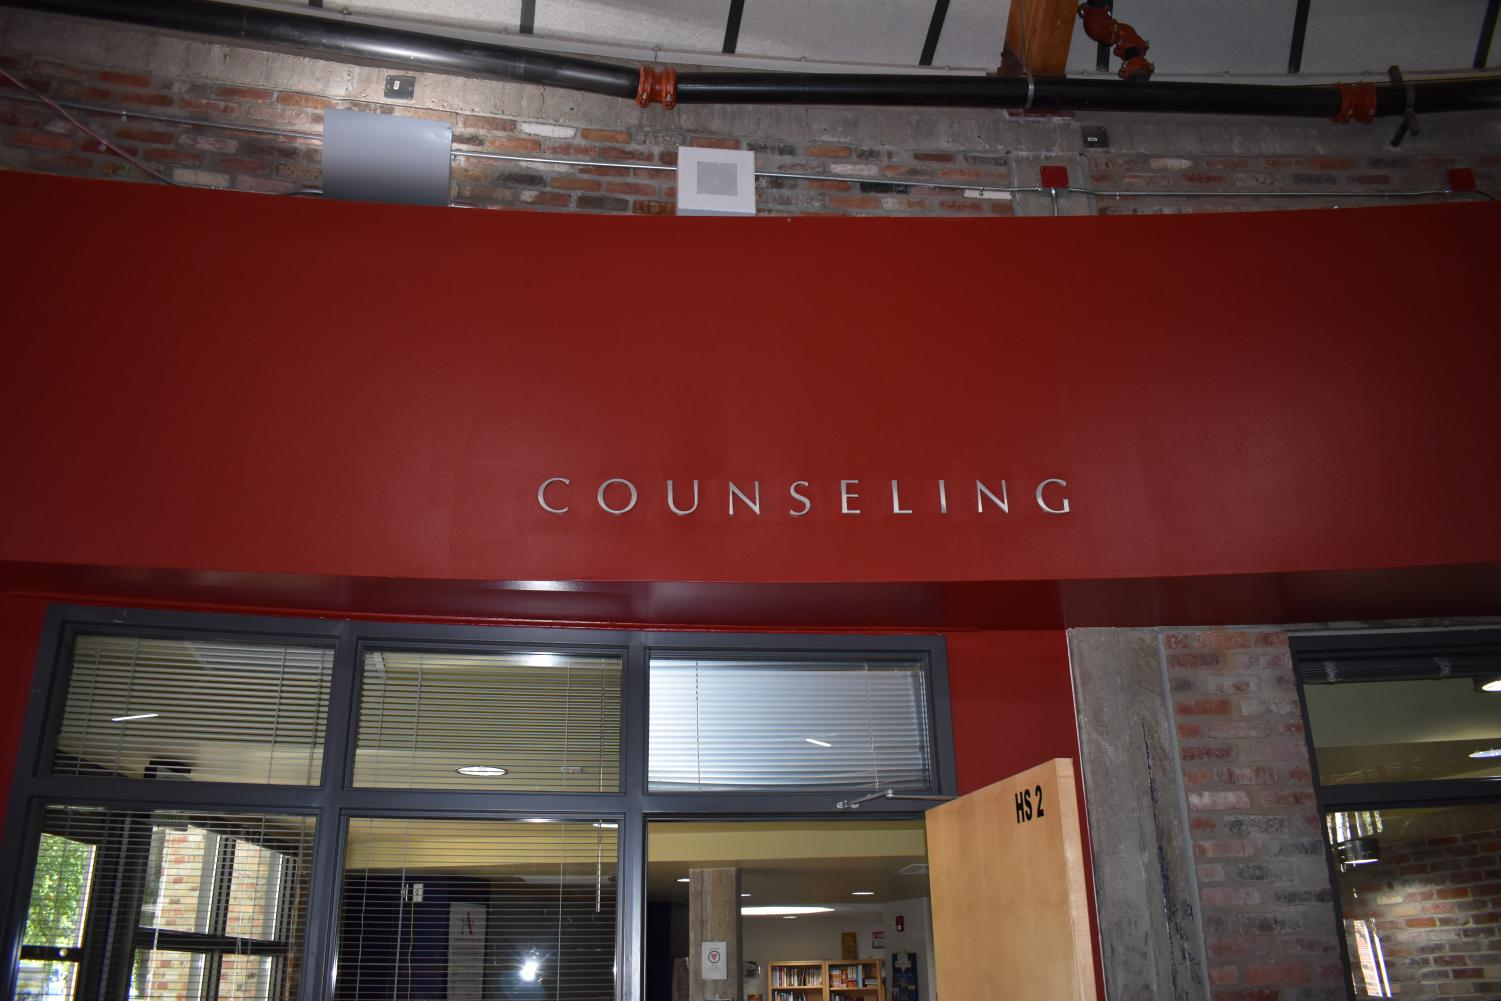 The counseling office, located next to the commons of AHS.